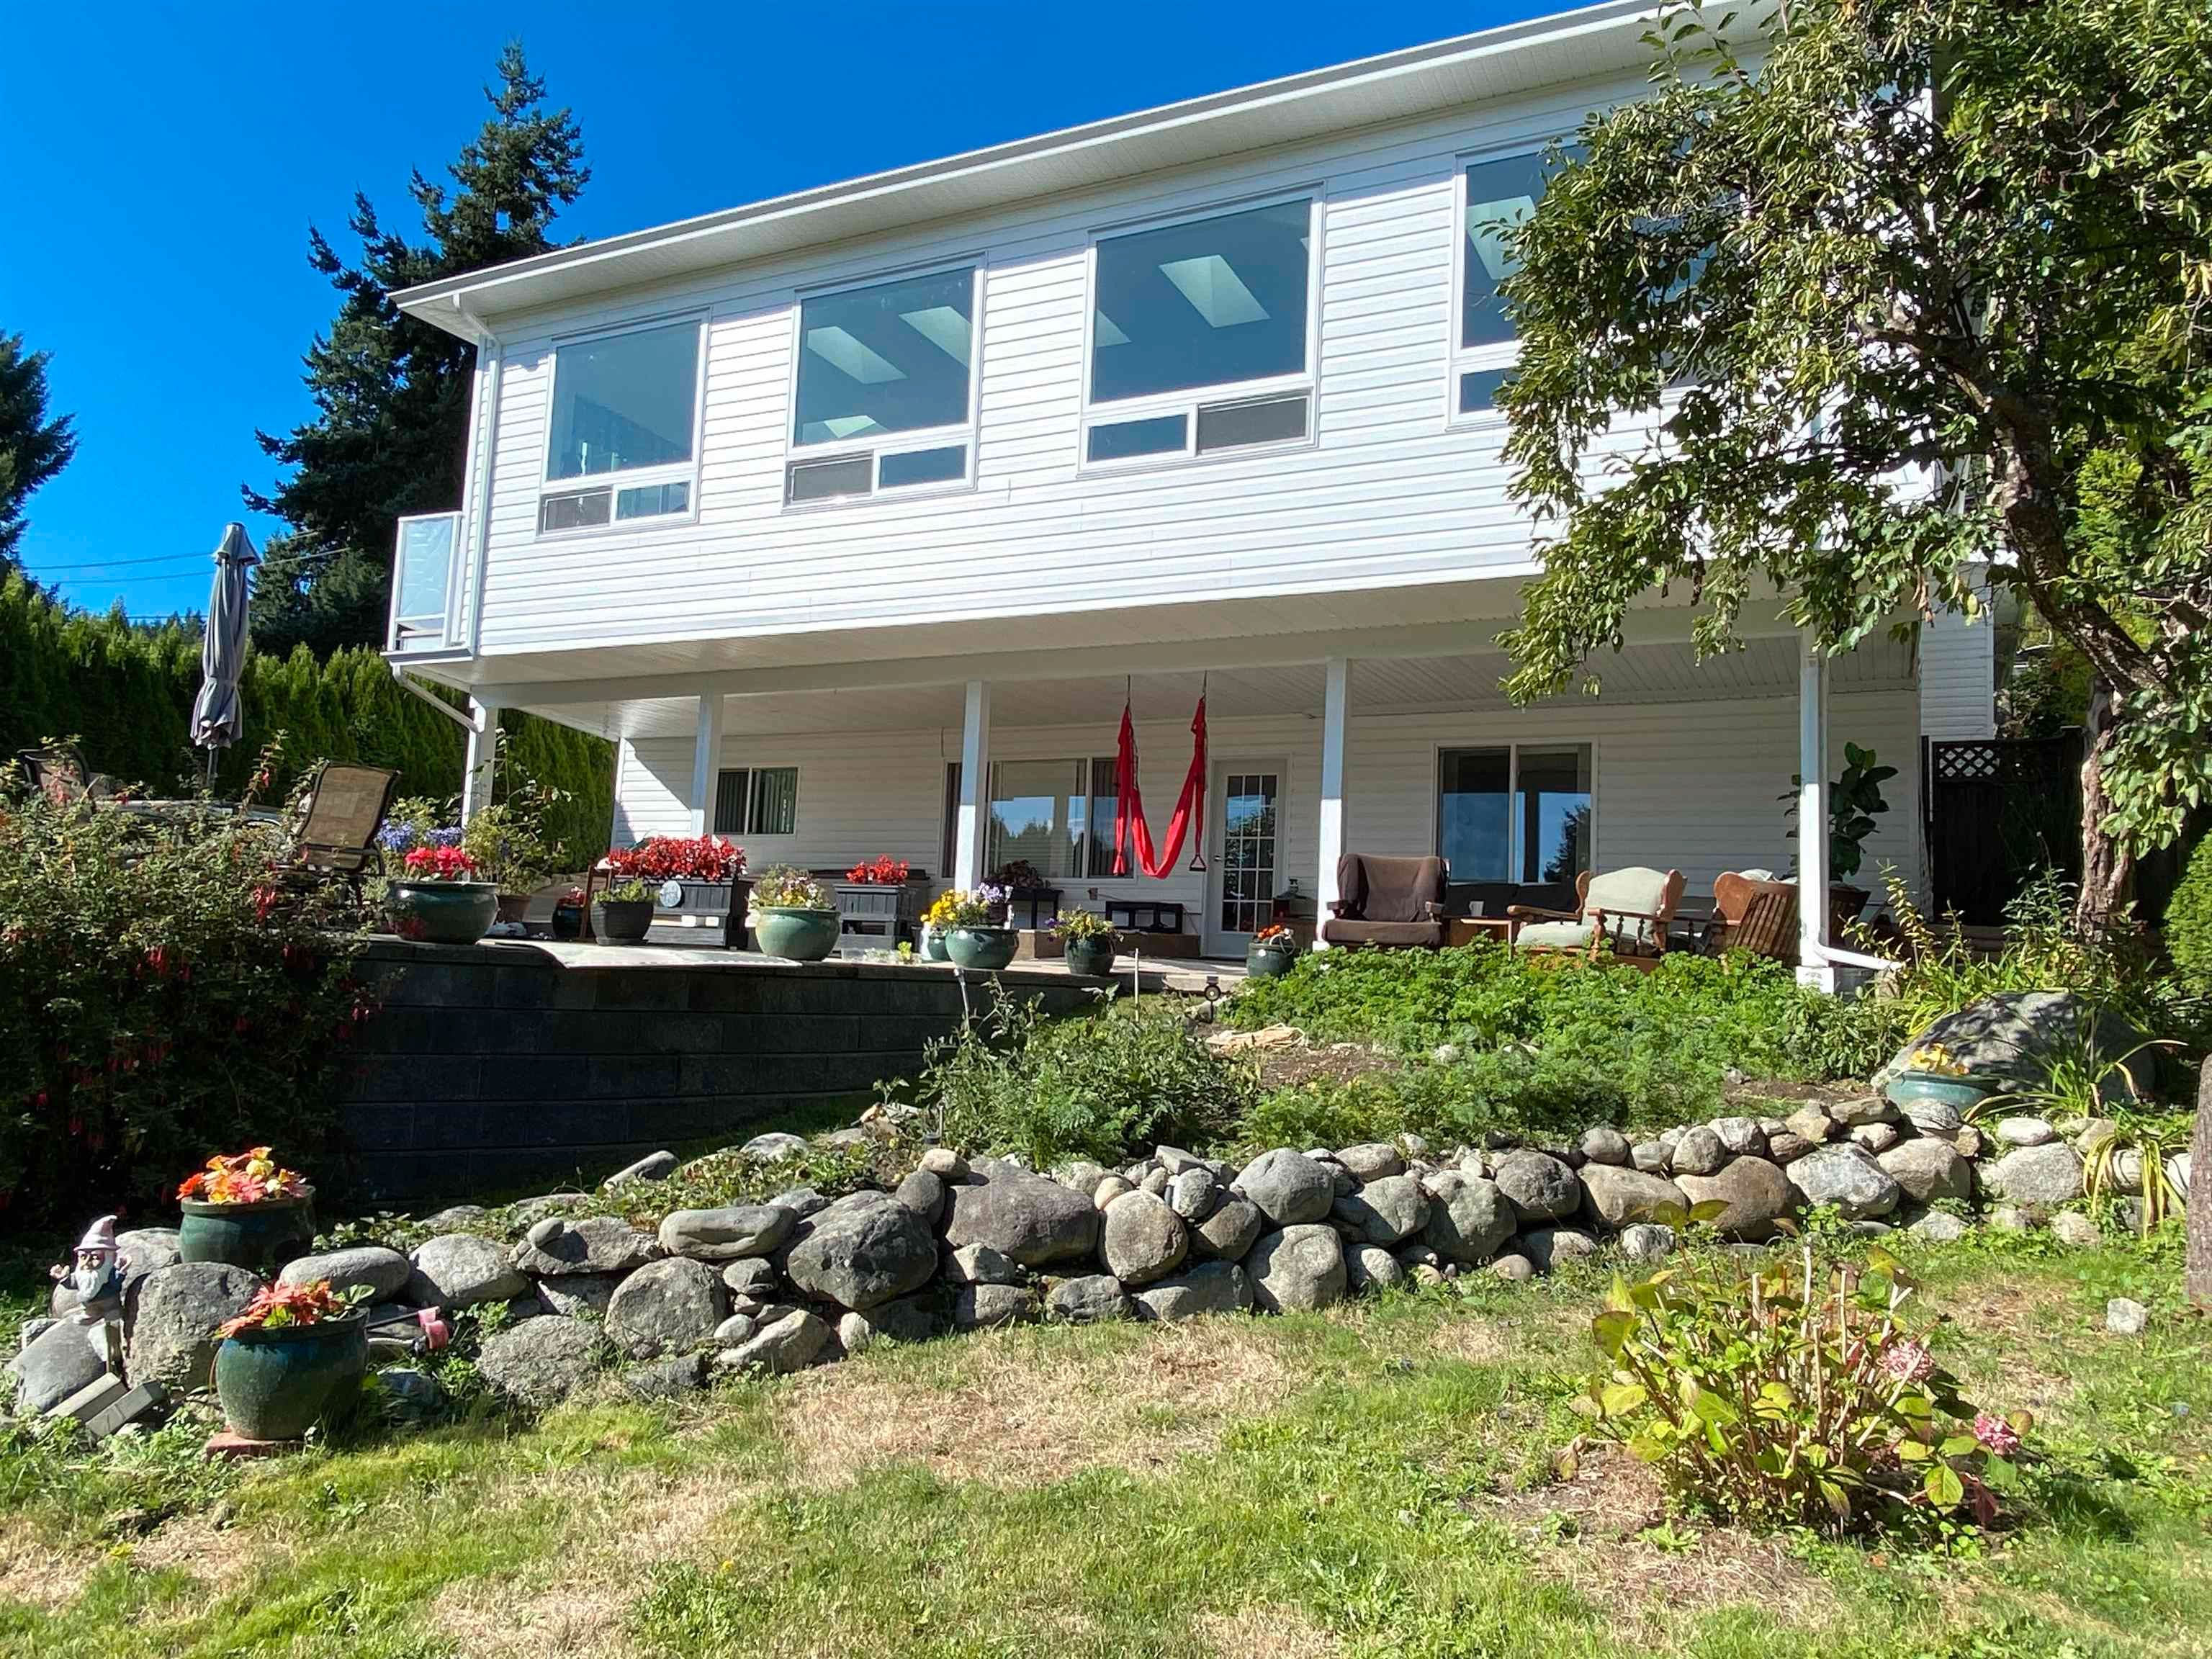 Main Photo: 396 S FLETCHER Road in Gibsons: Gibsons & Area House for sale (Sunshine Coast)  : MLS®# R2622956